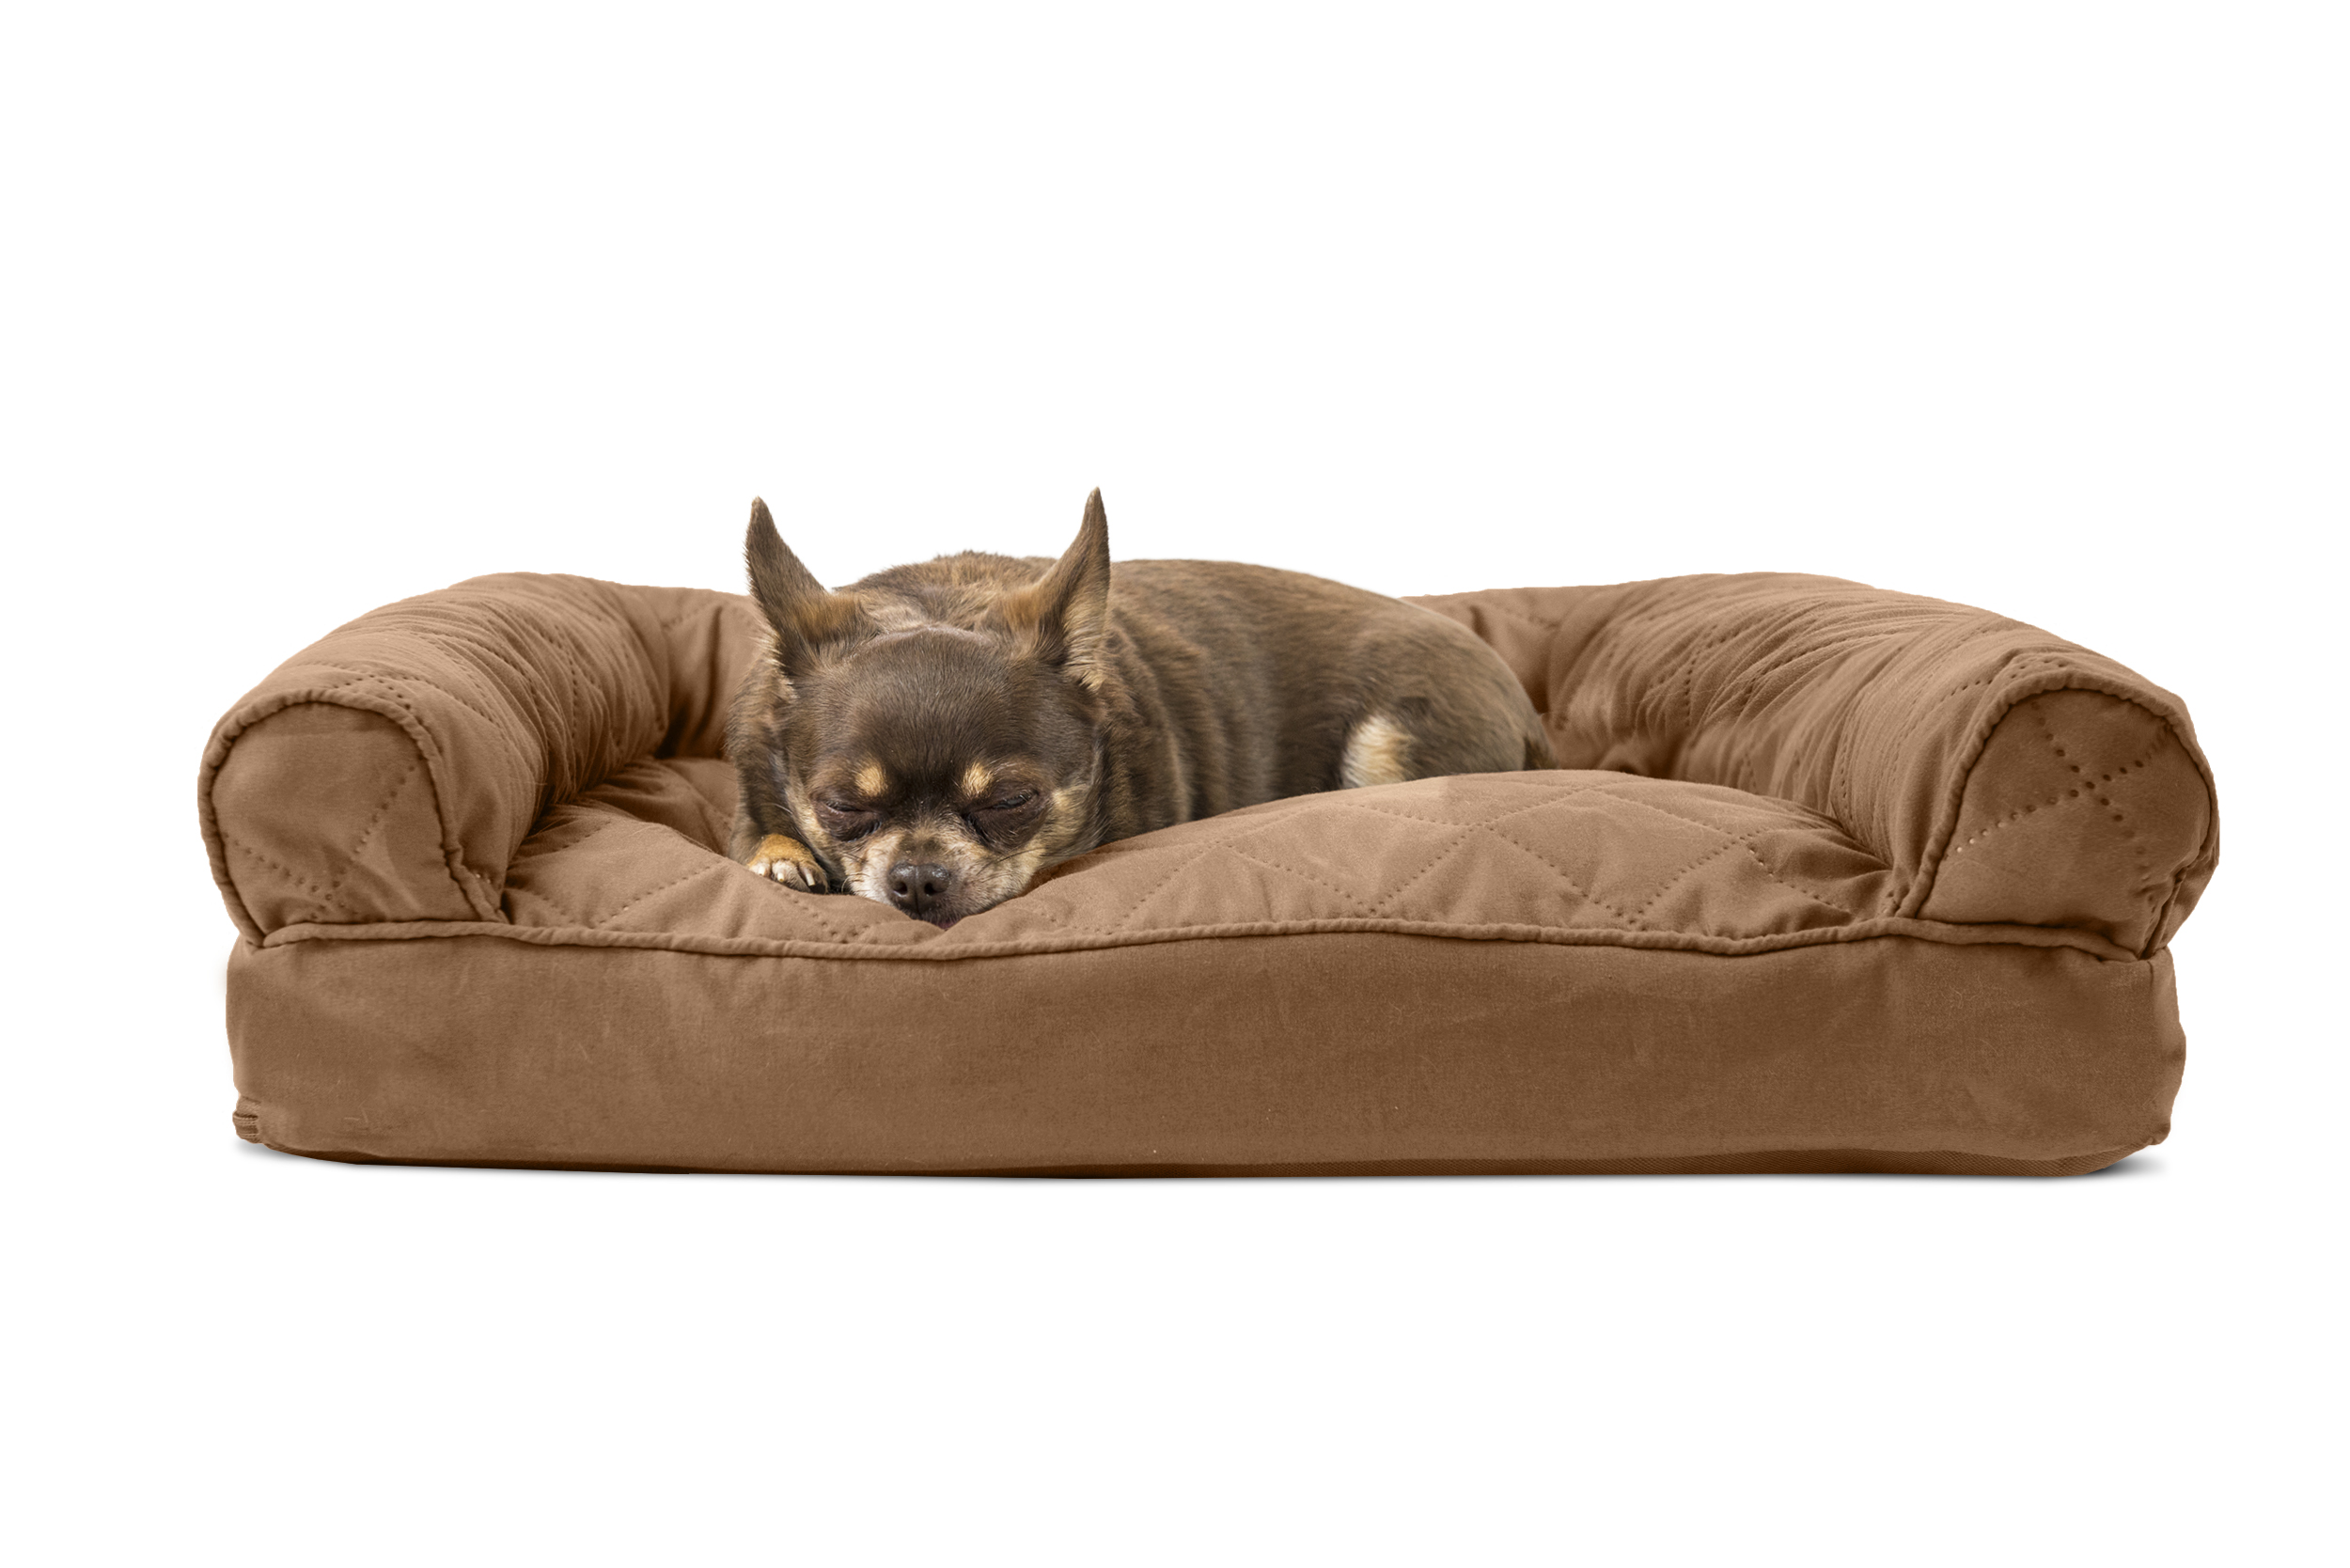 Quilted sofa pet bed wwwenergywardennet for Wow sofa bed